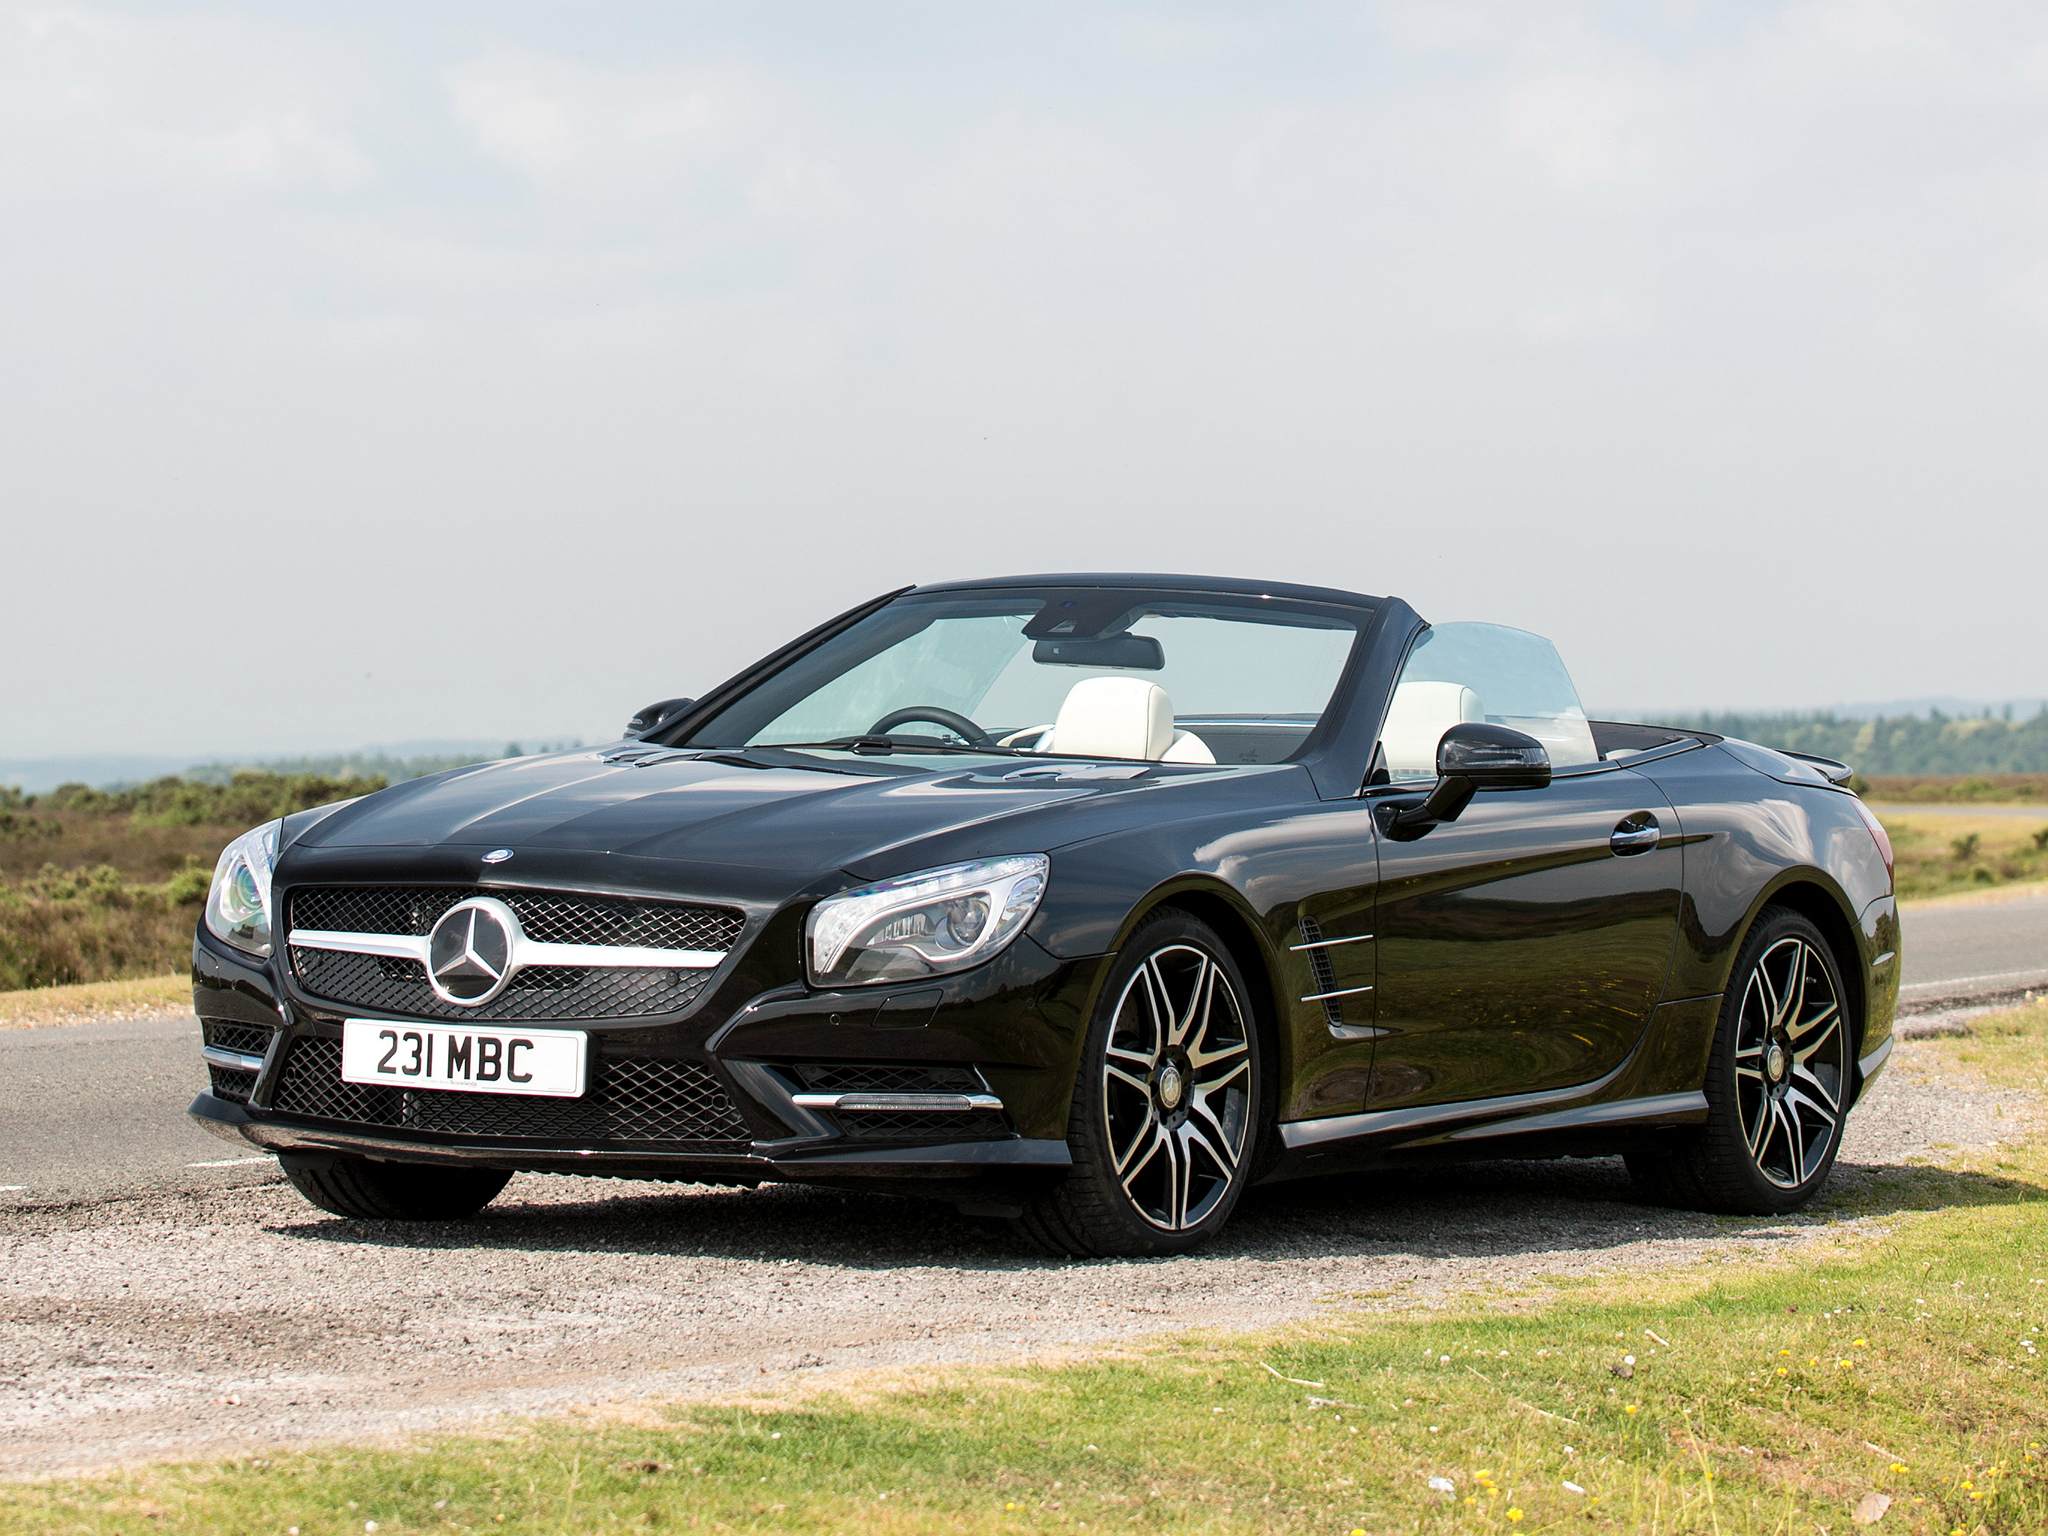 Us spec mercedes benz sl 400 coming with 329 hp 27 mpg for Mercedes benz news